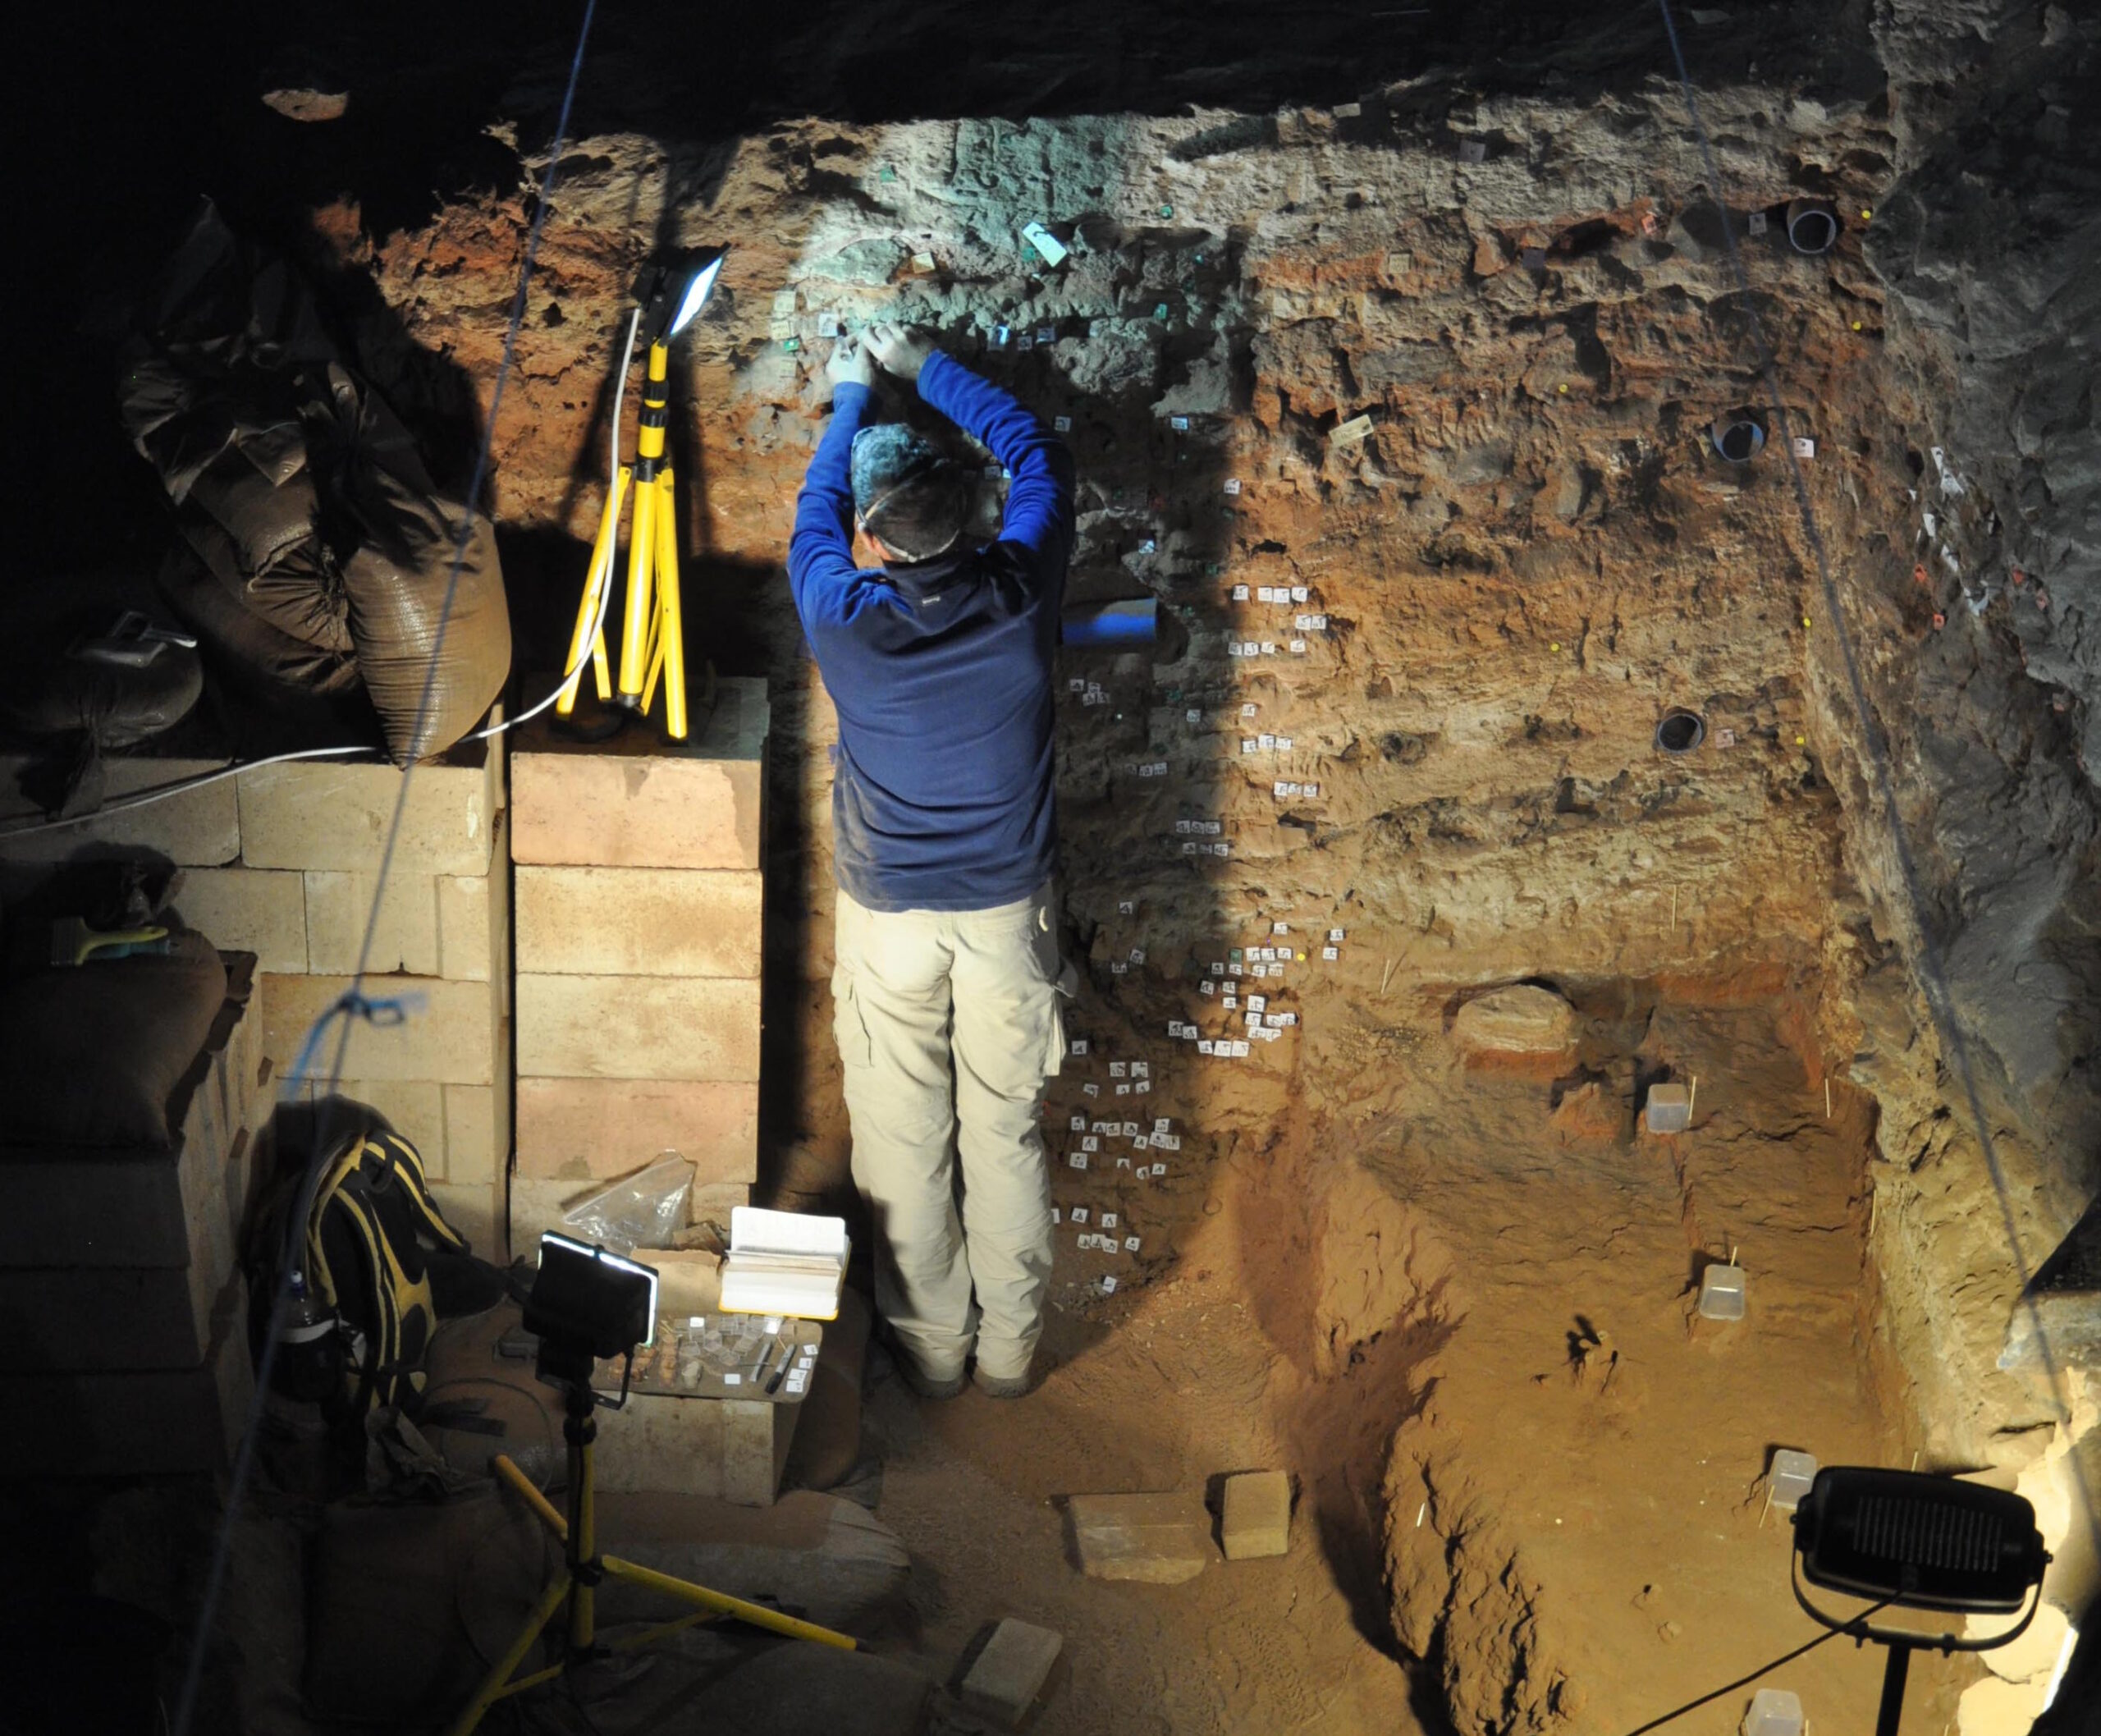 Dating techniques identify possible earliest evidence for cave occupation